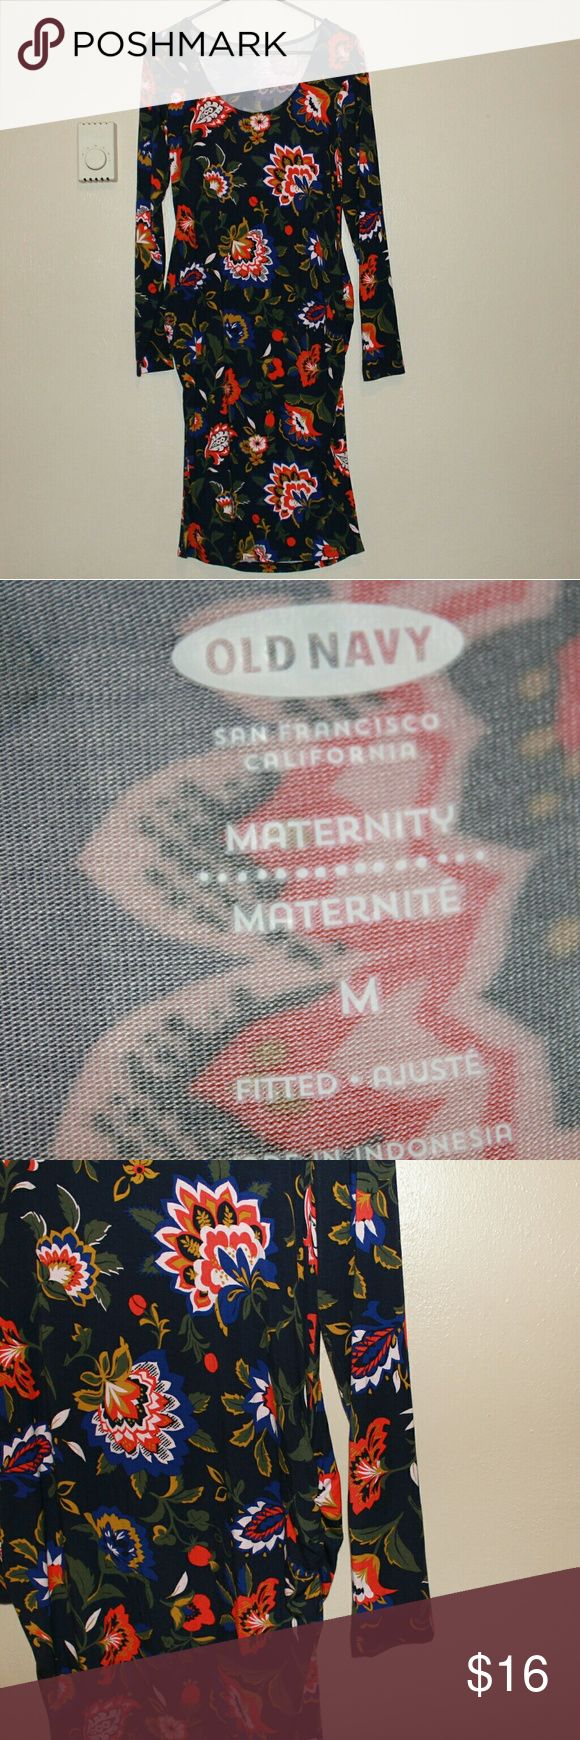 Old Navy Fitted Floral maternity dress, medium Great condition long sleeve Old Navy Fitted Floral maternity dress, medium. The print is a navy blue background with a fall colored floral pattern Old Navy Dresses Long Sleeve